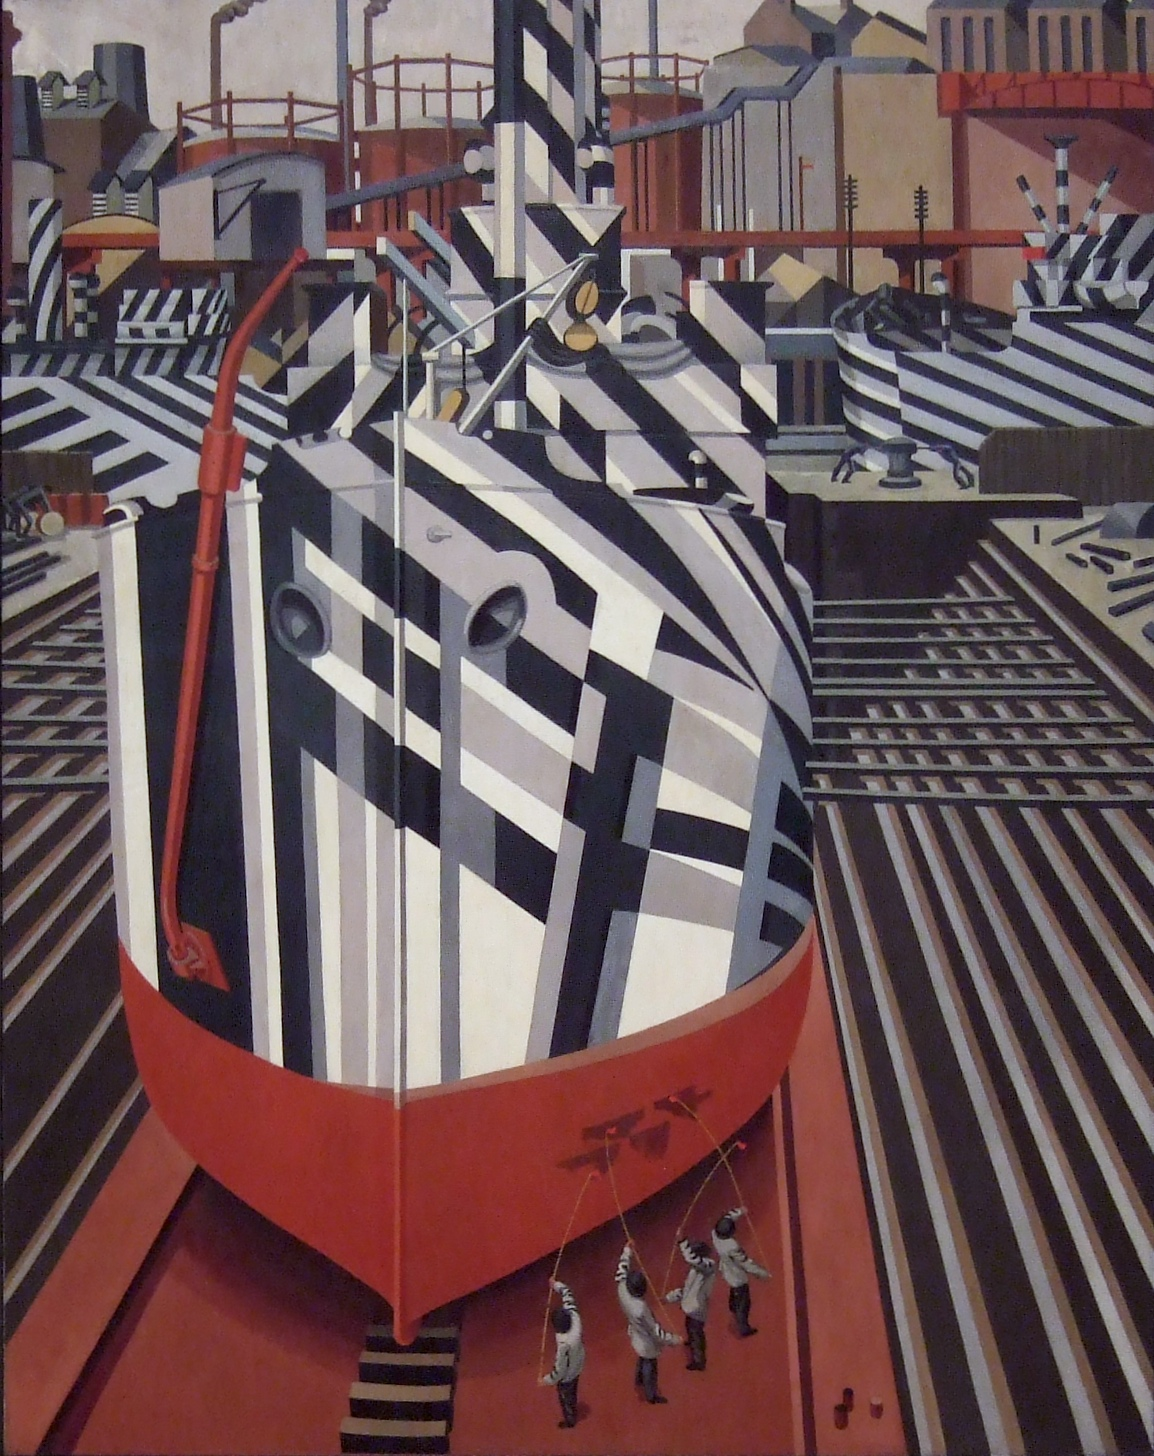 Dazzel-Ships in Drydock in Liverpool. A painting by Edward Wadsworth.